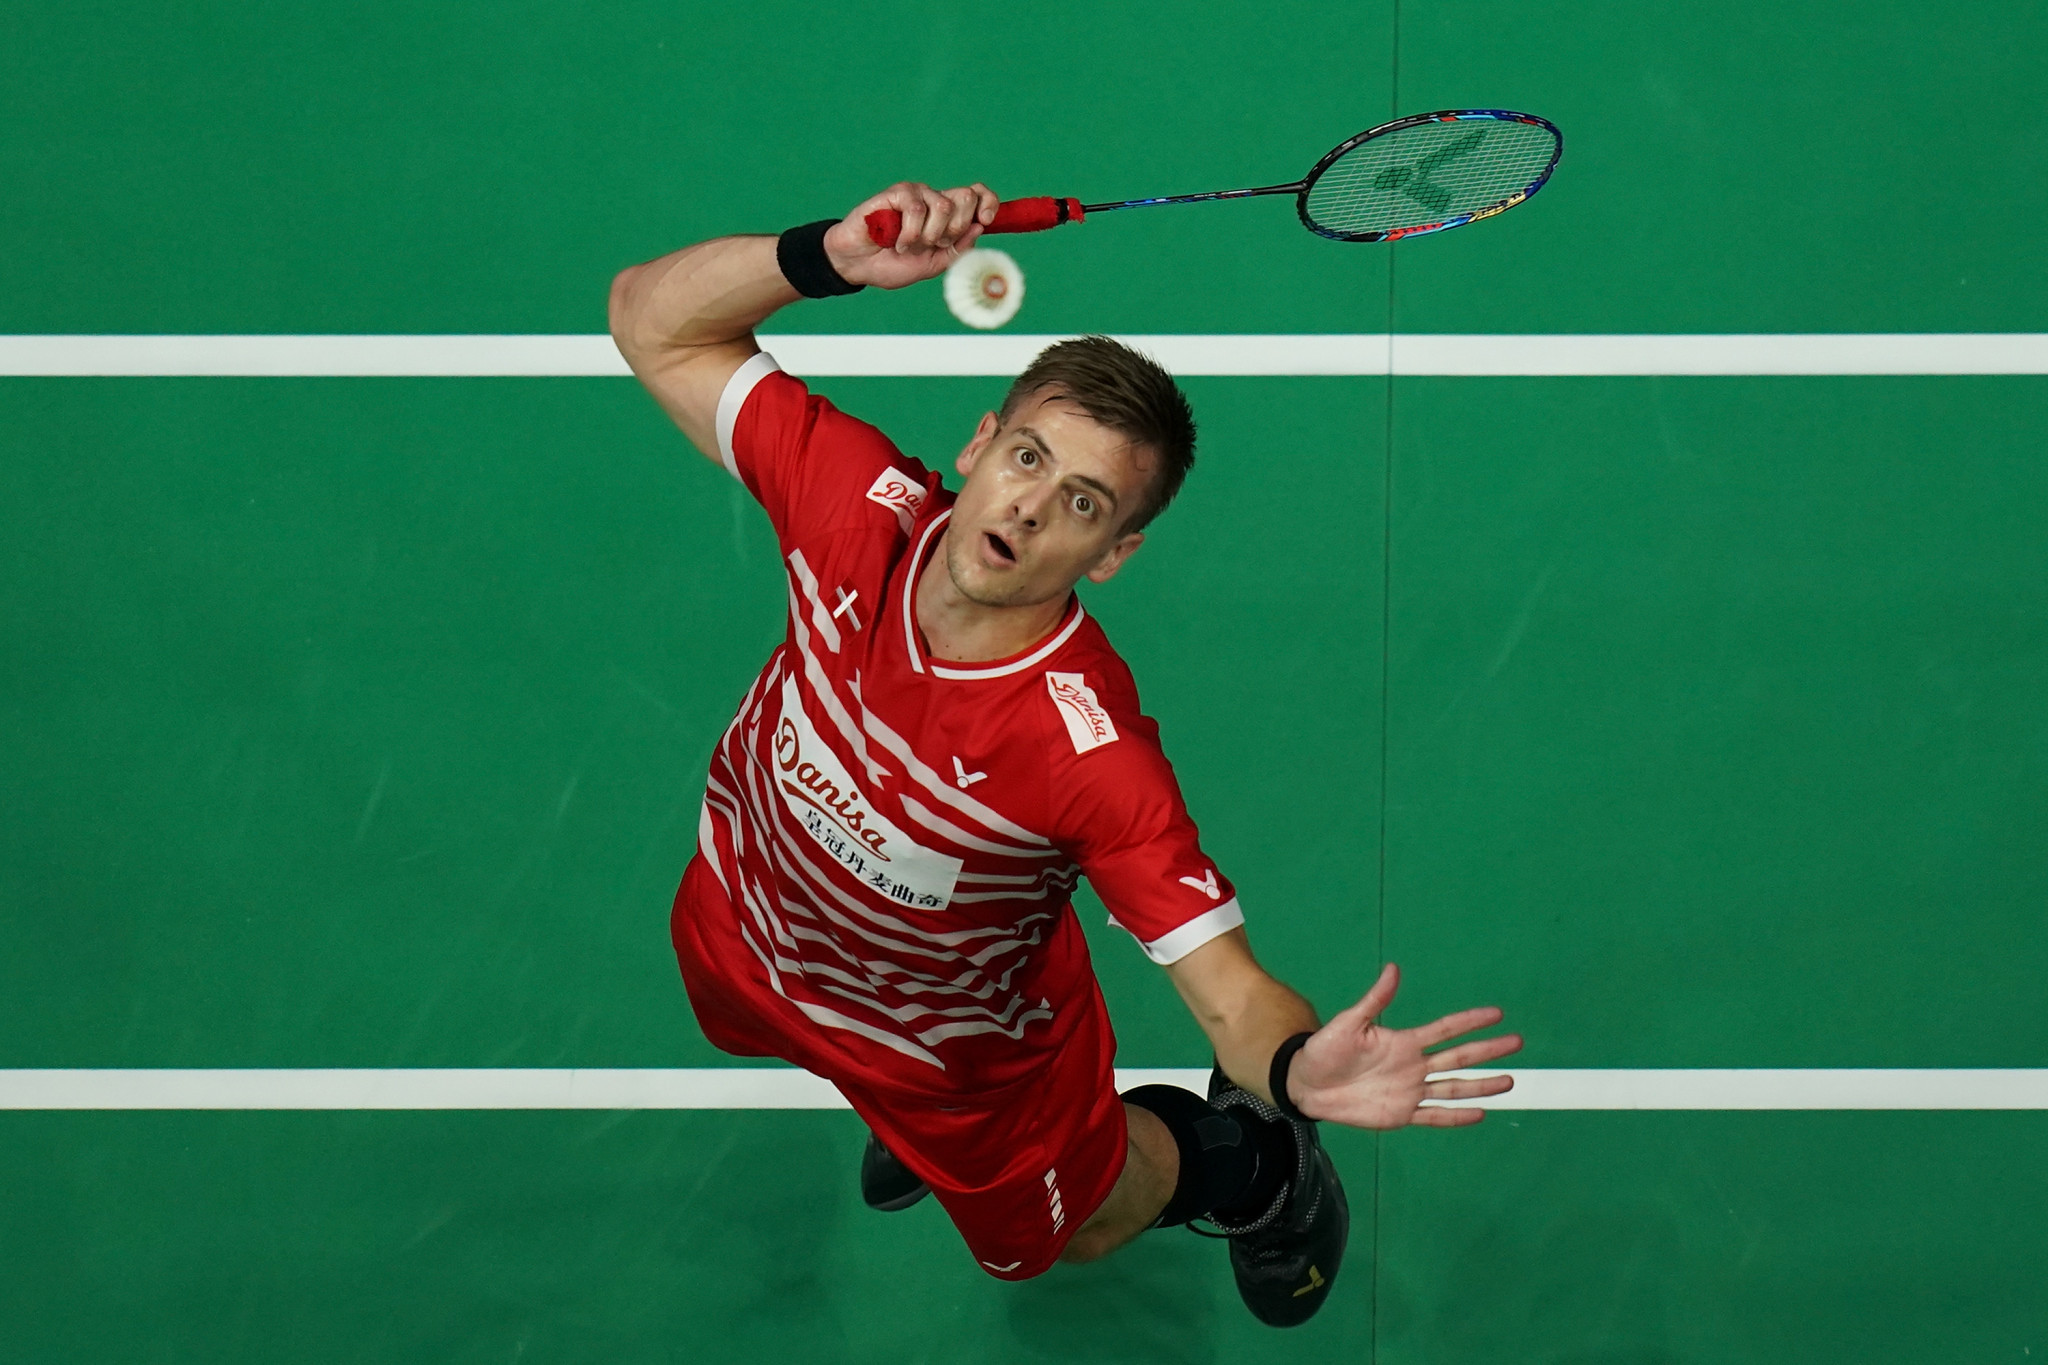 Denmark's Hans-Kristian Solberg Vittinghus has been seeded first for the men's singles competition at the Badminton World Federation Orléans Masters ©Getty Images